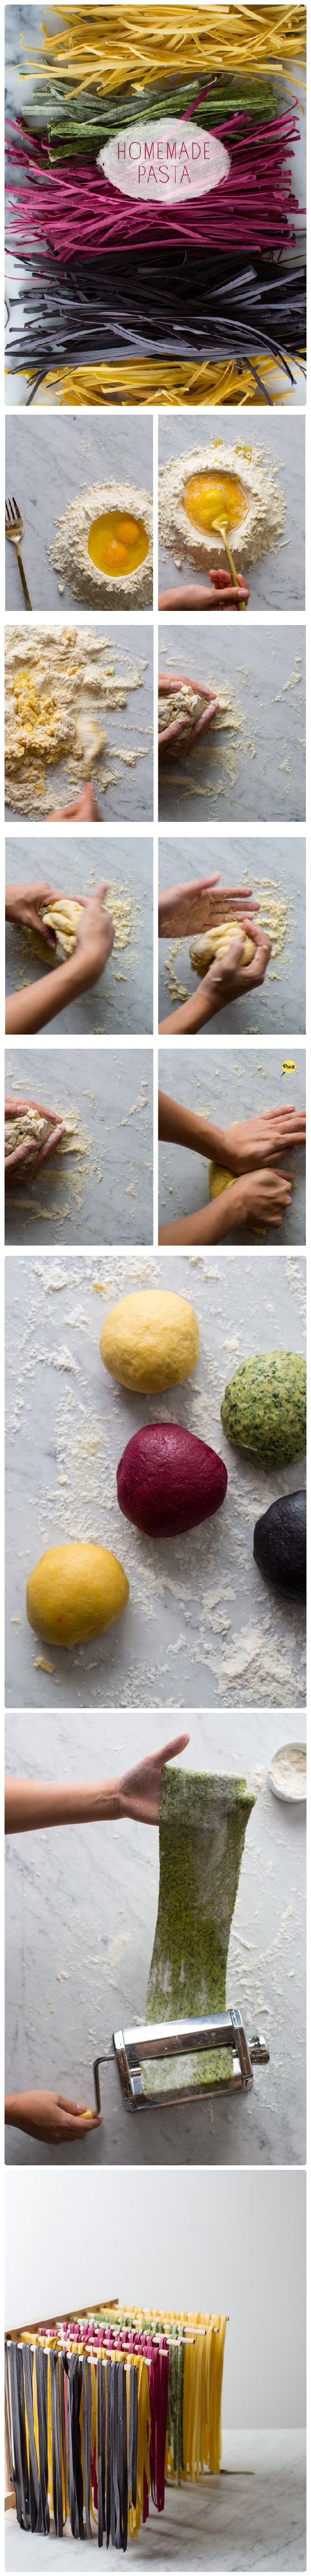 Best 25+ Homemade pasta ideas on Pinterest | Fresh pasta, Homemade ...